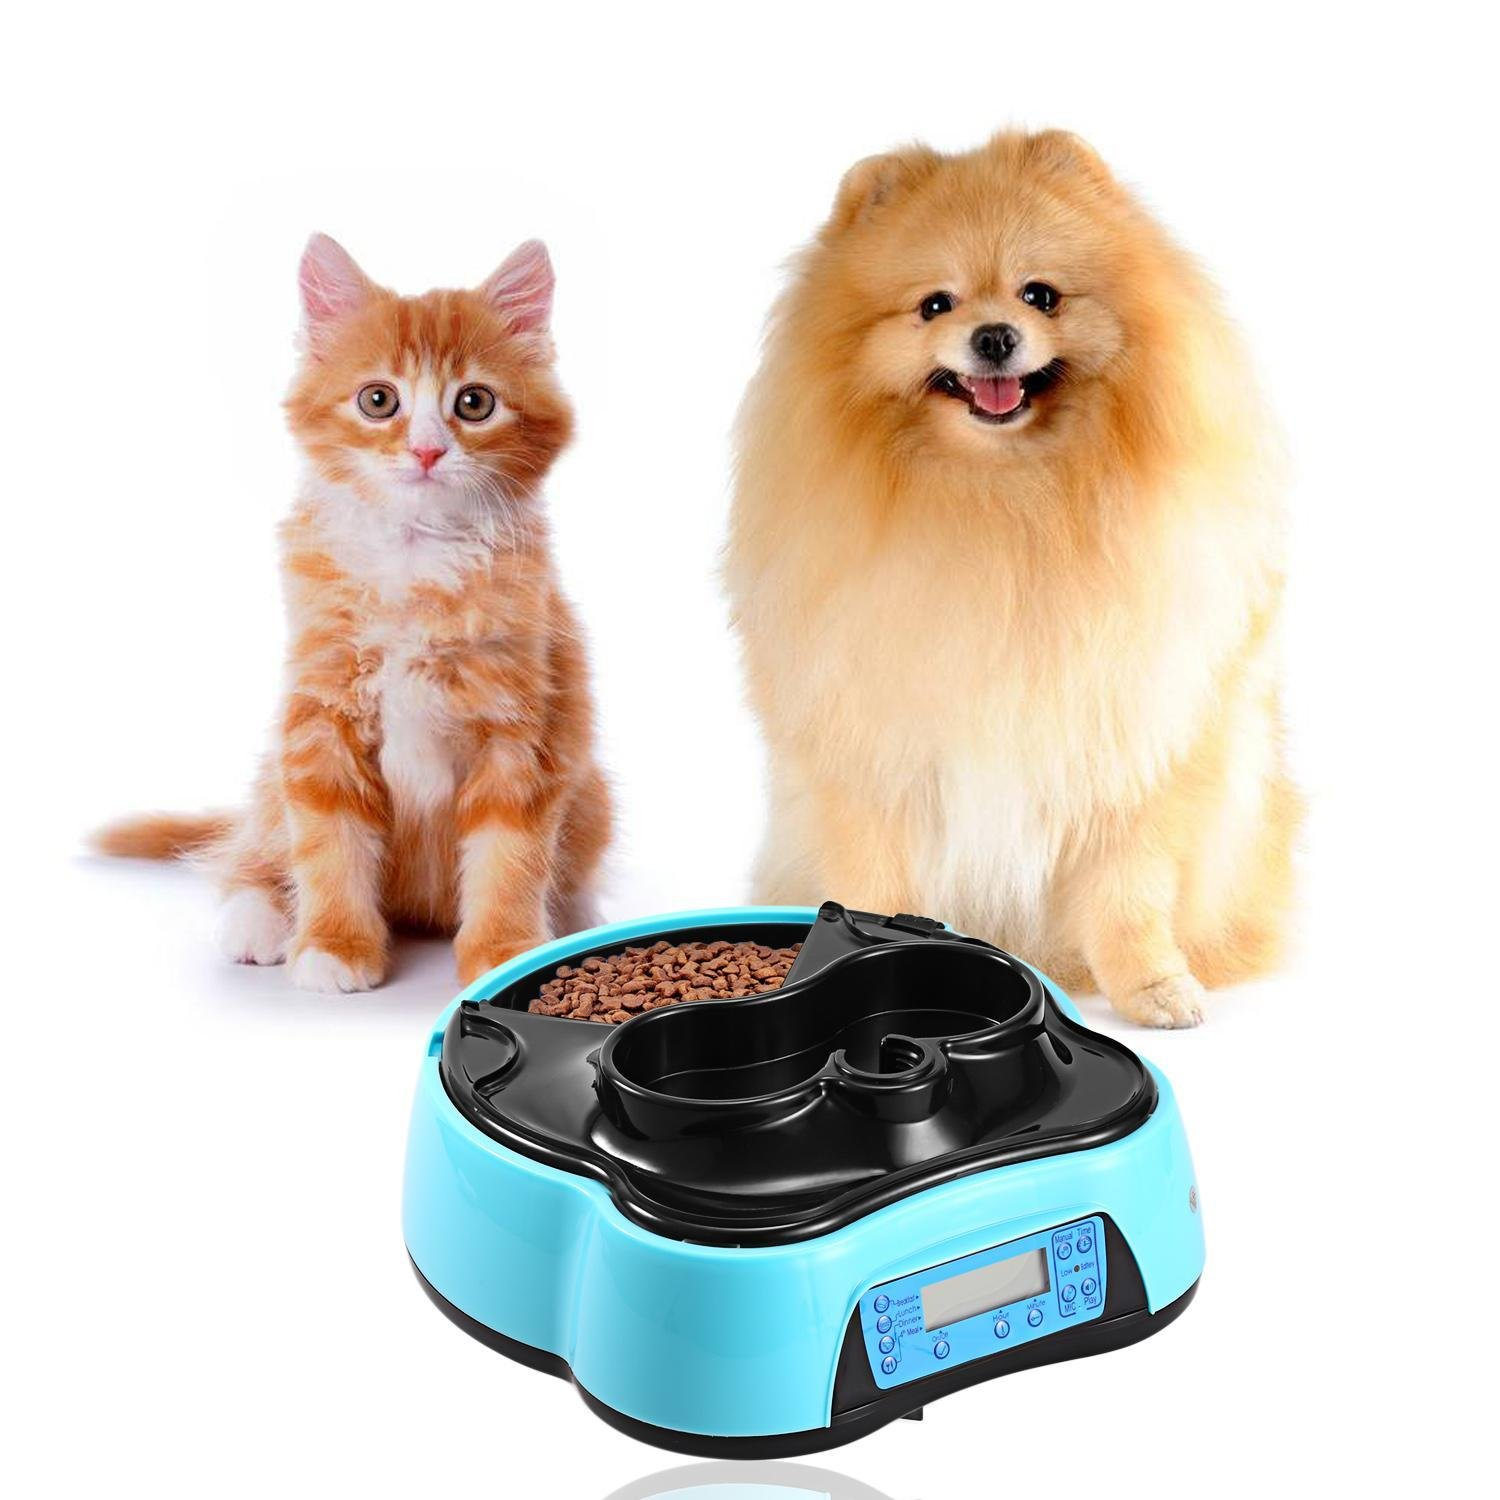 Amazon.com : Cosway 2017 Automatic Pet Feeder for Dog&Cat ...